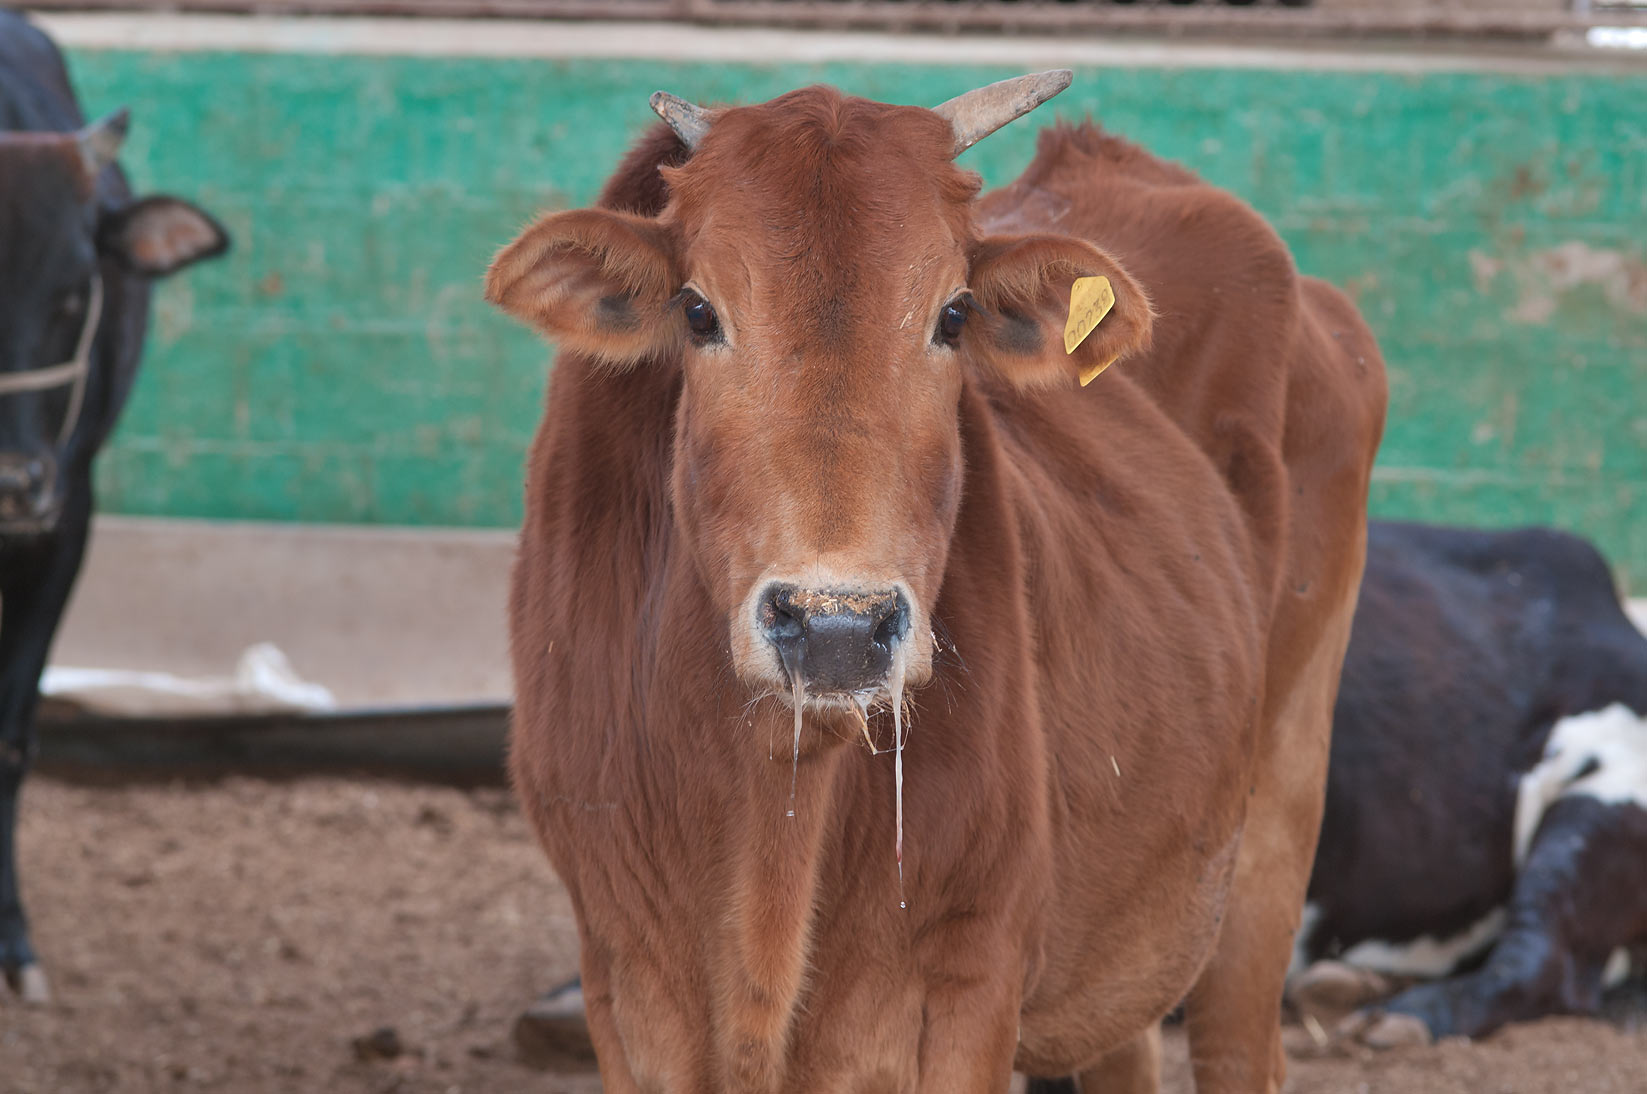 Brown cow with a running nose in Animal Market, Wholesale Markets area. Doha, Qatar